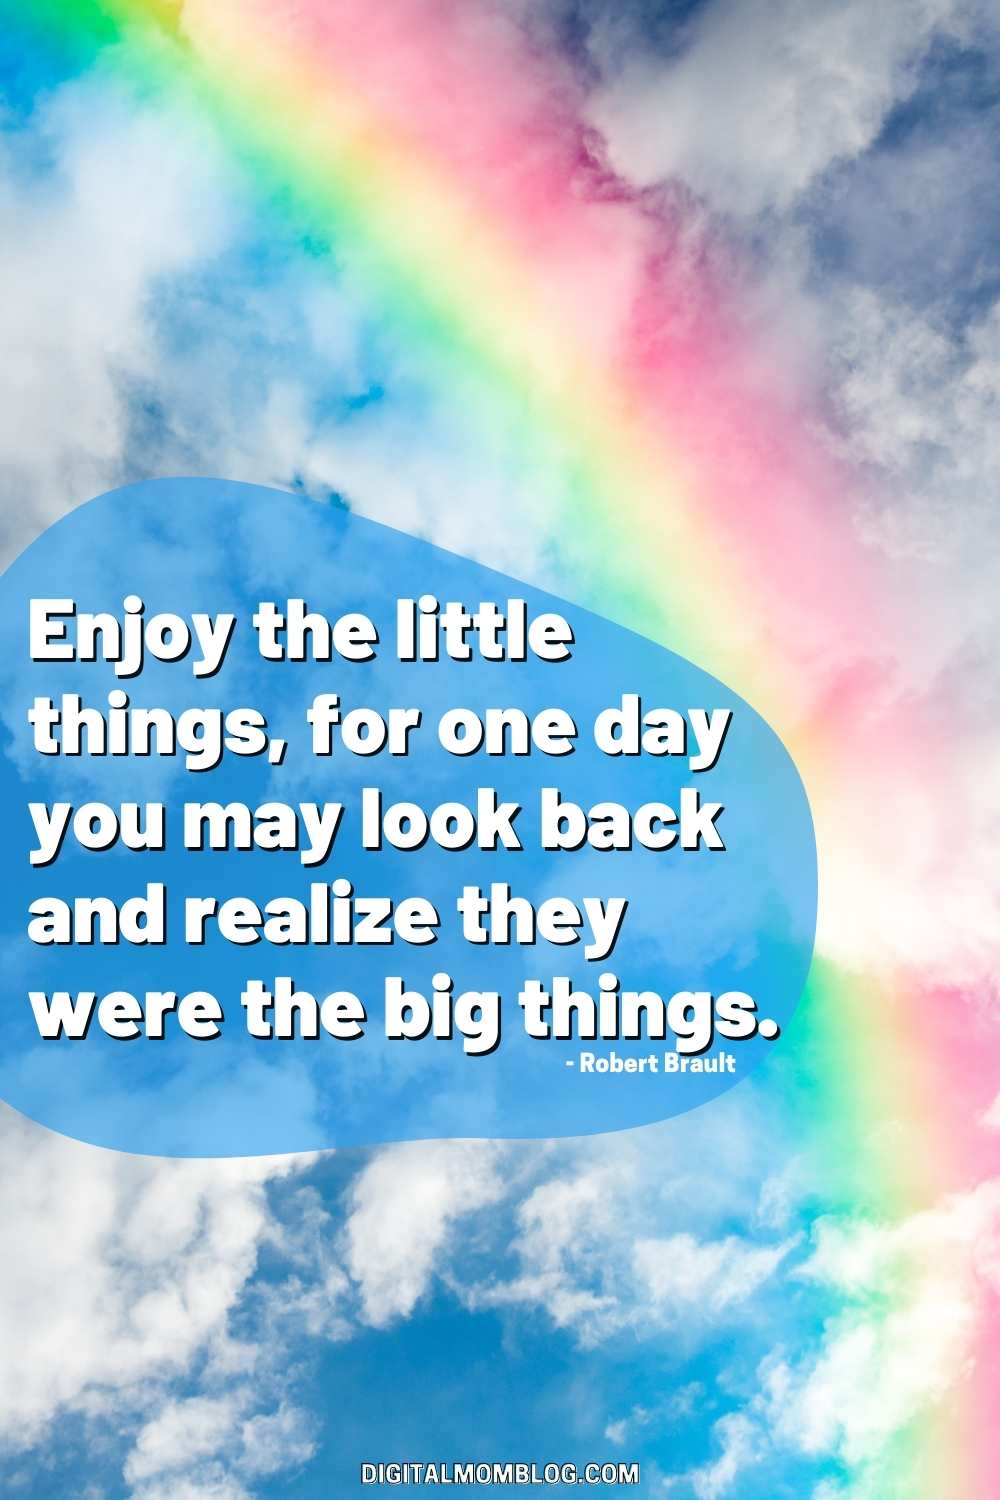 Enjoy the Little Things - Quote about Gratitude